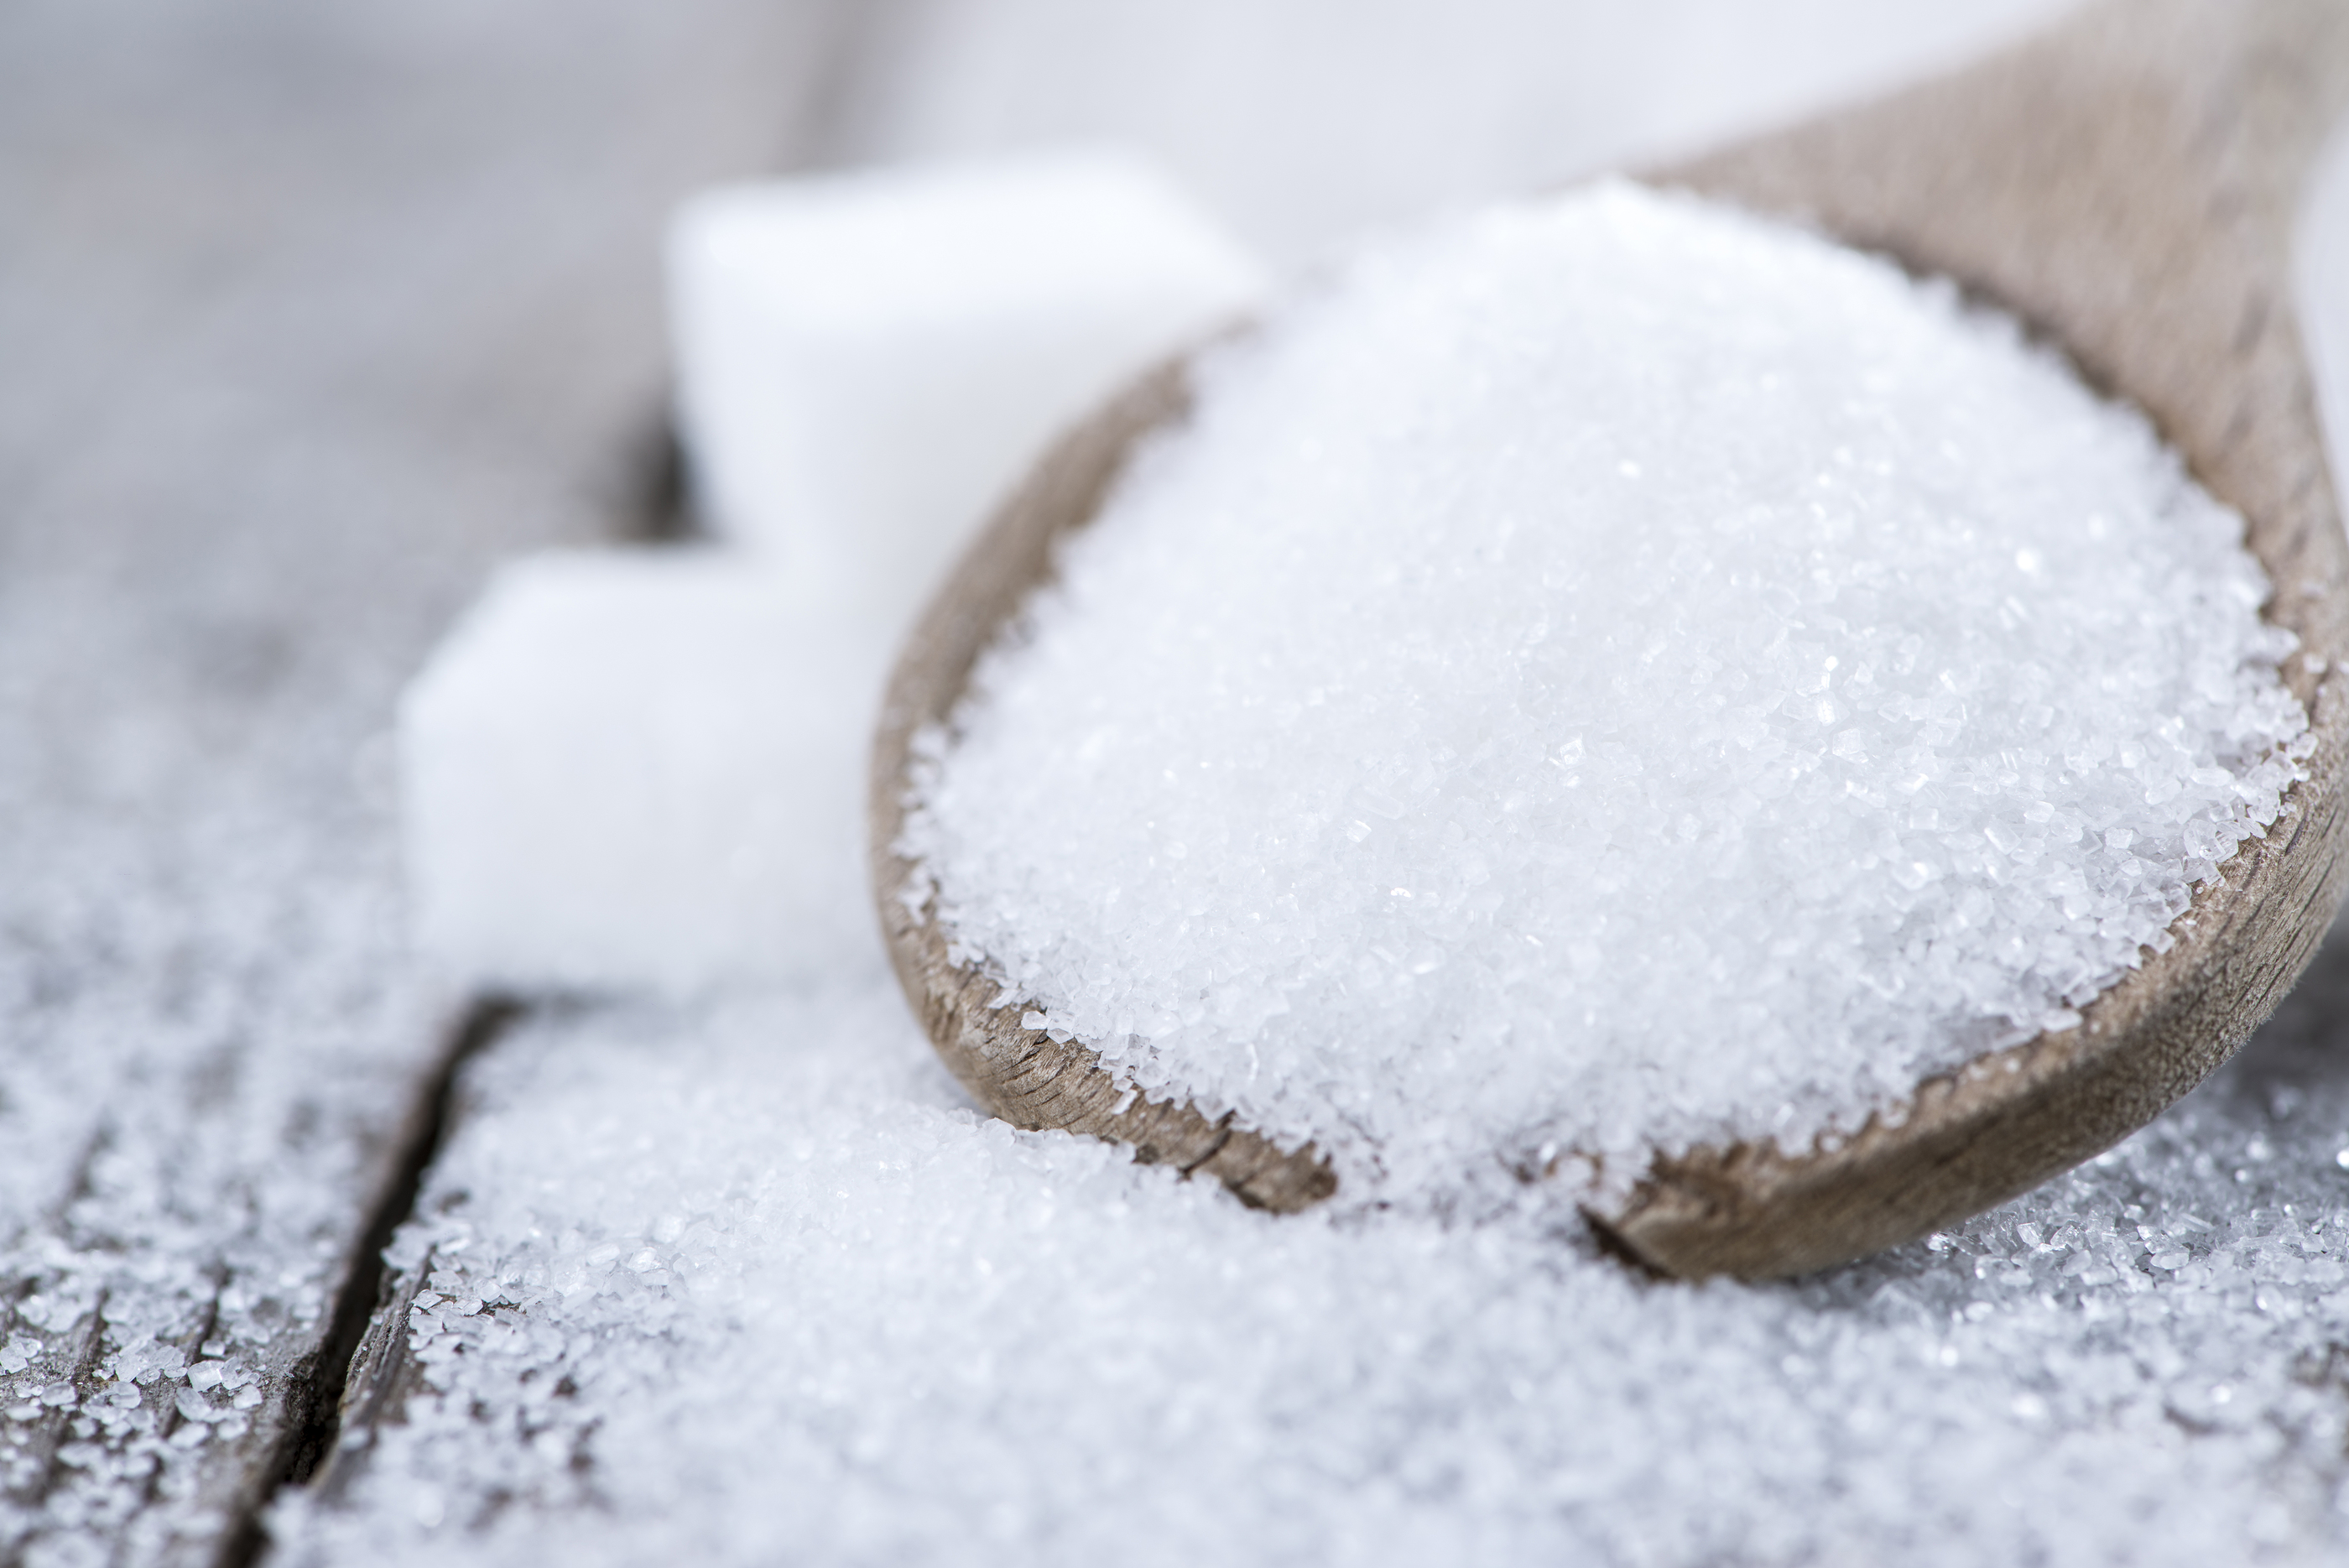 bigstock-Heap-Of-Sugar-57649838.jpg